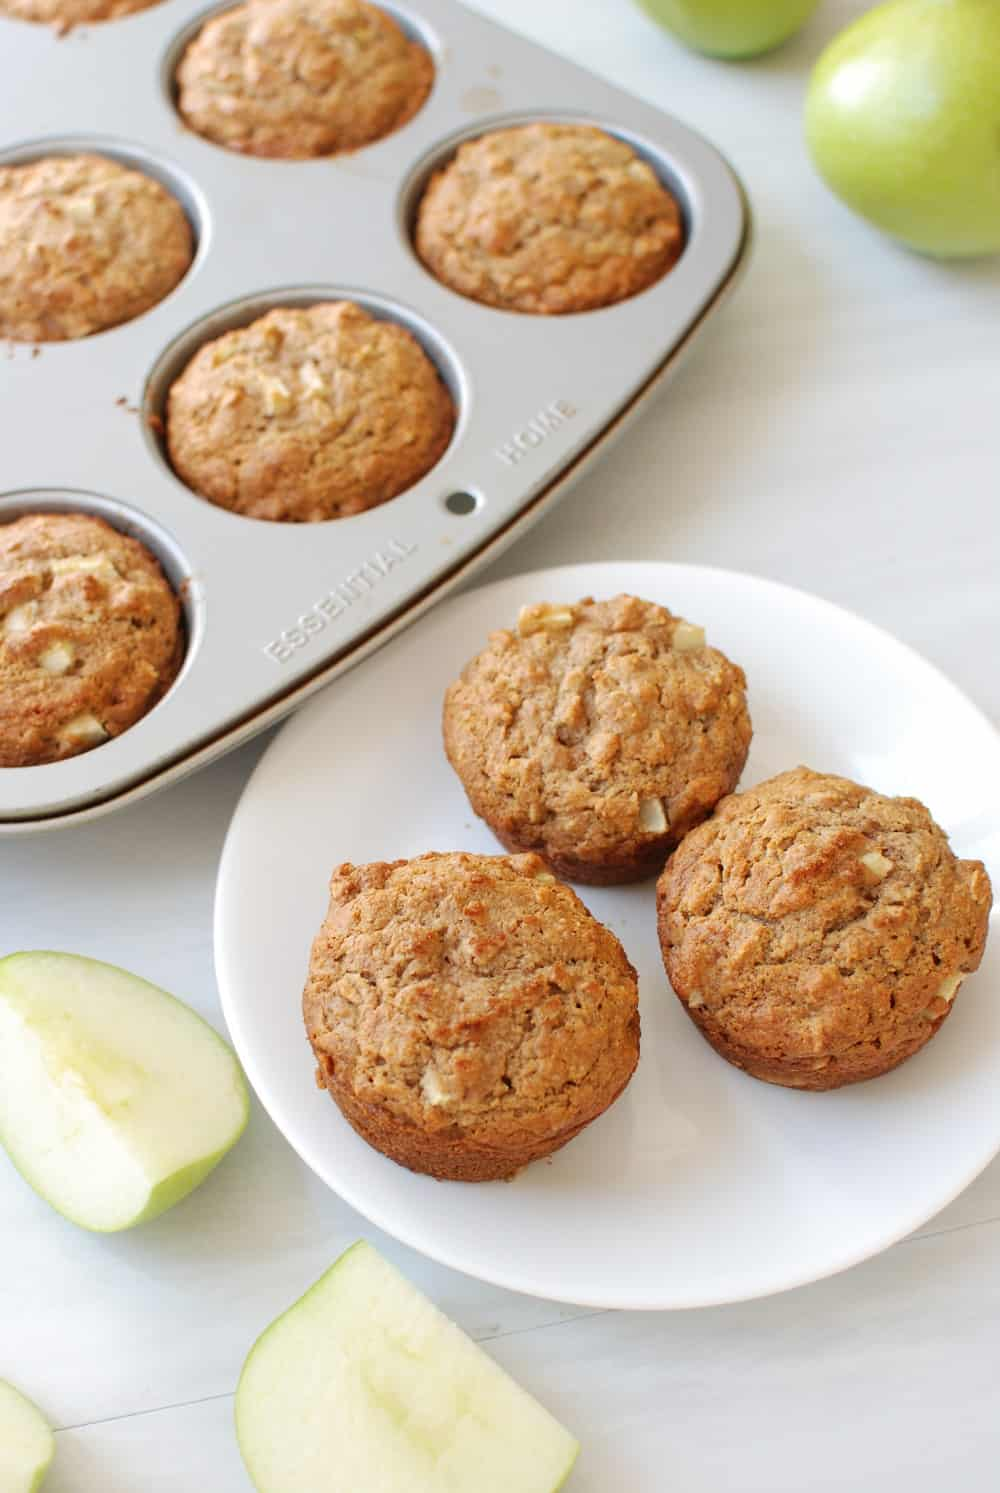 Three whole wheat vegan apple muffins on a plate